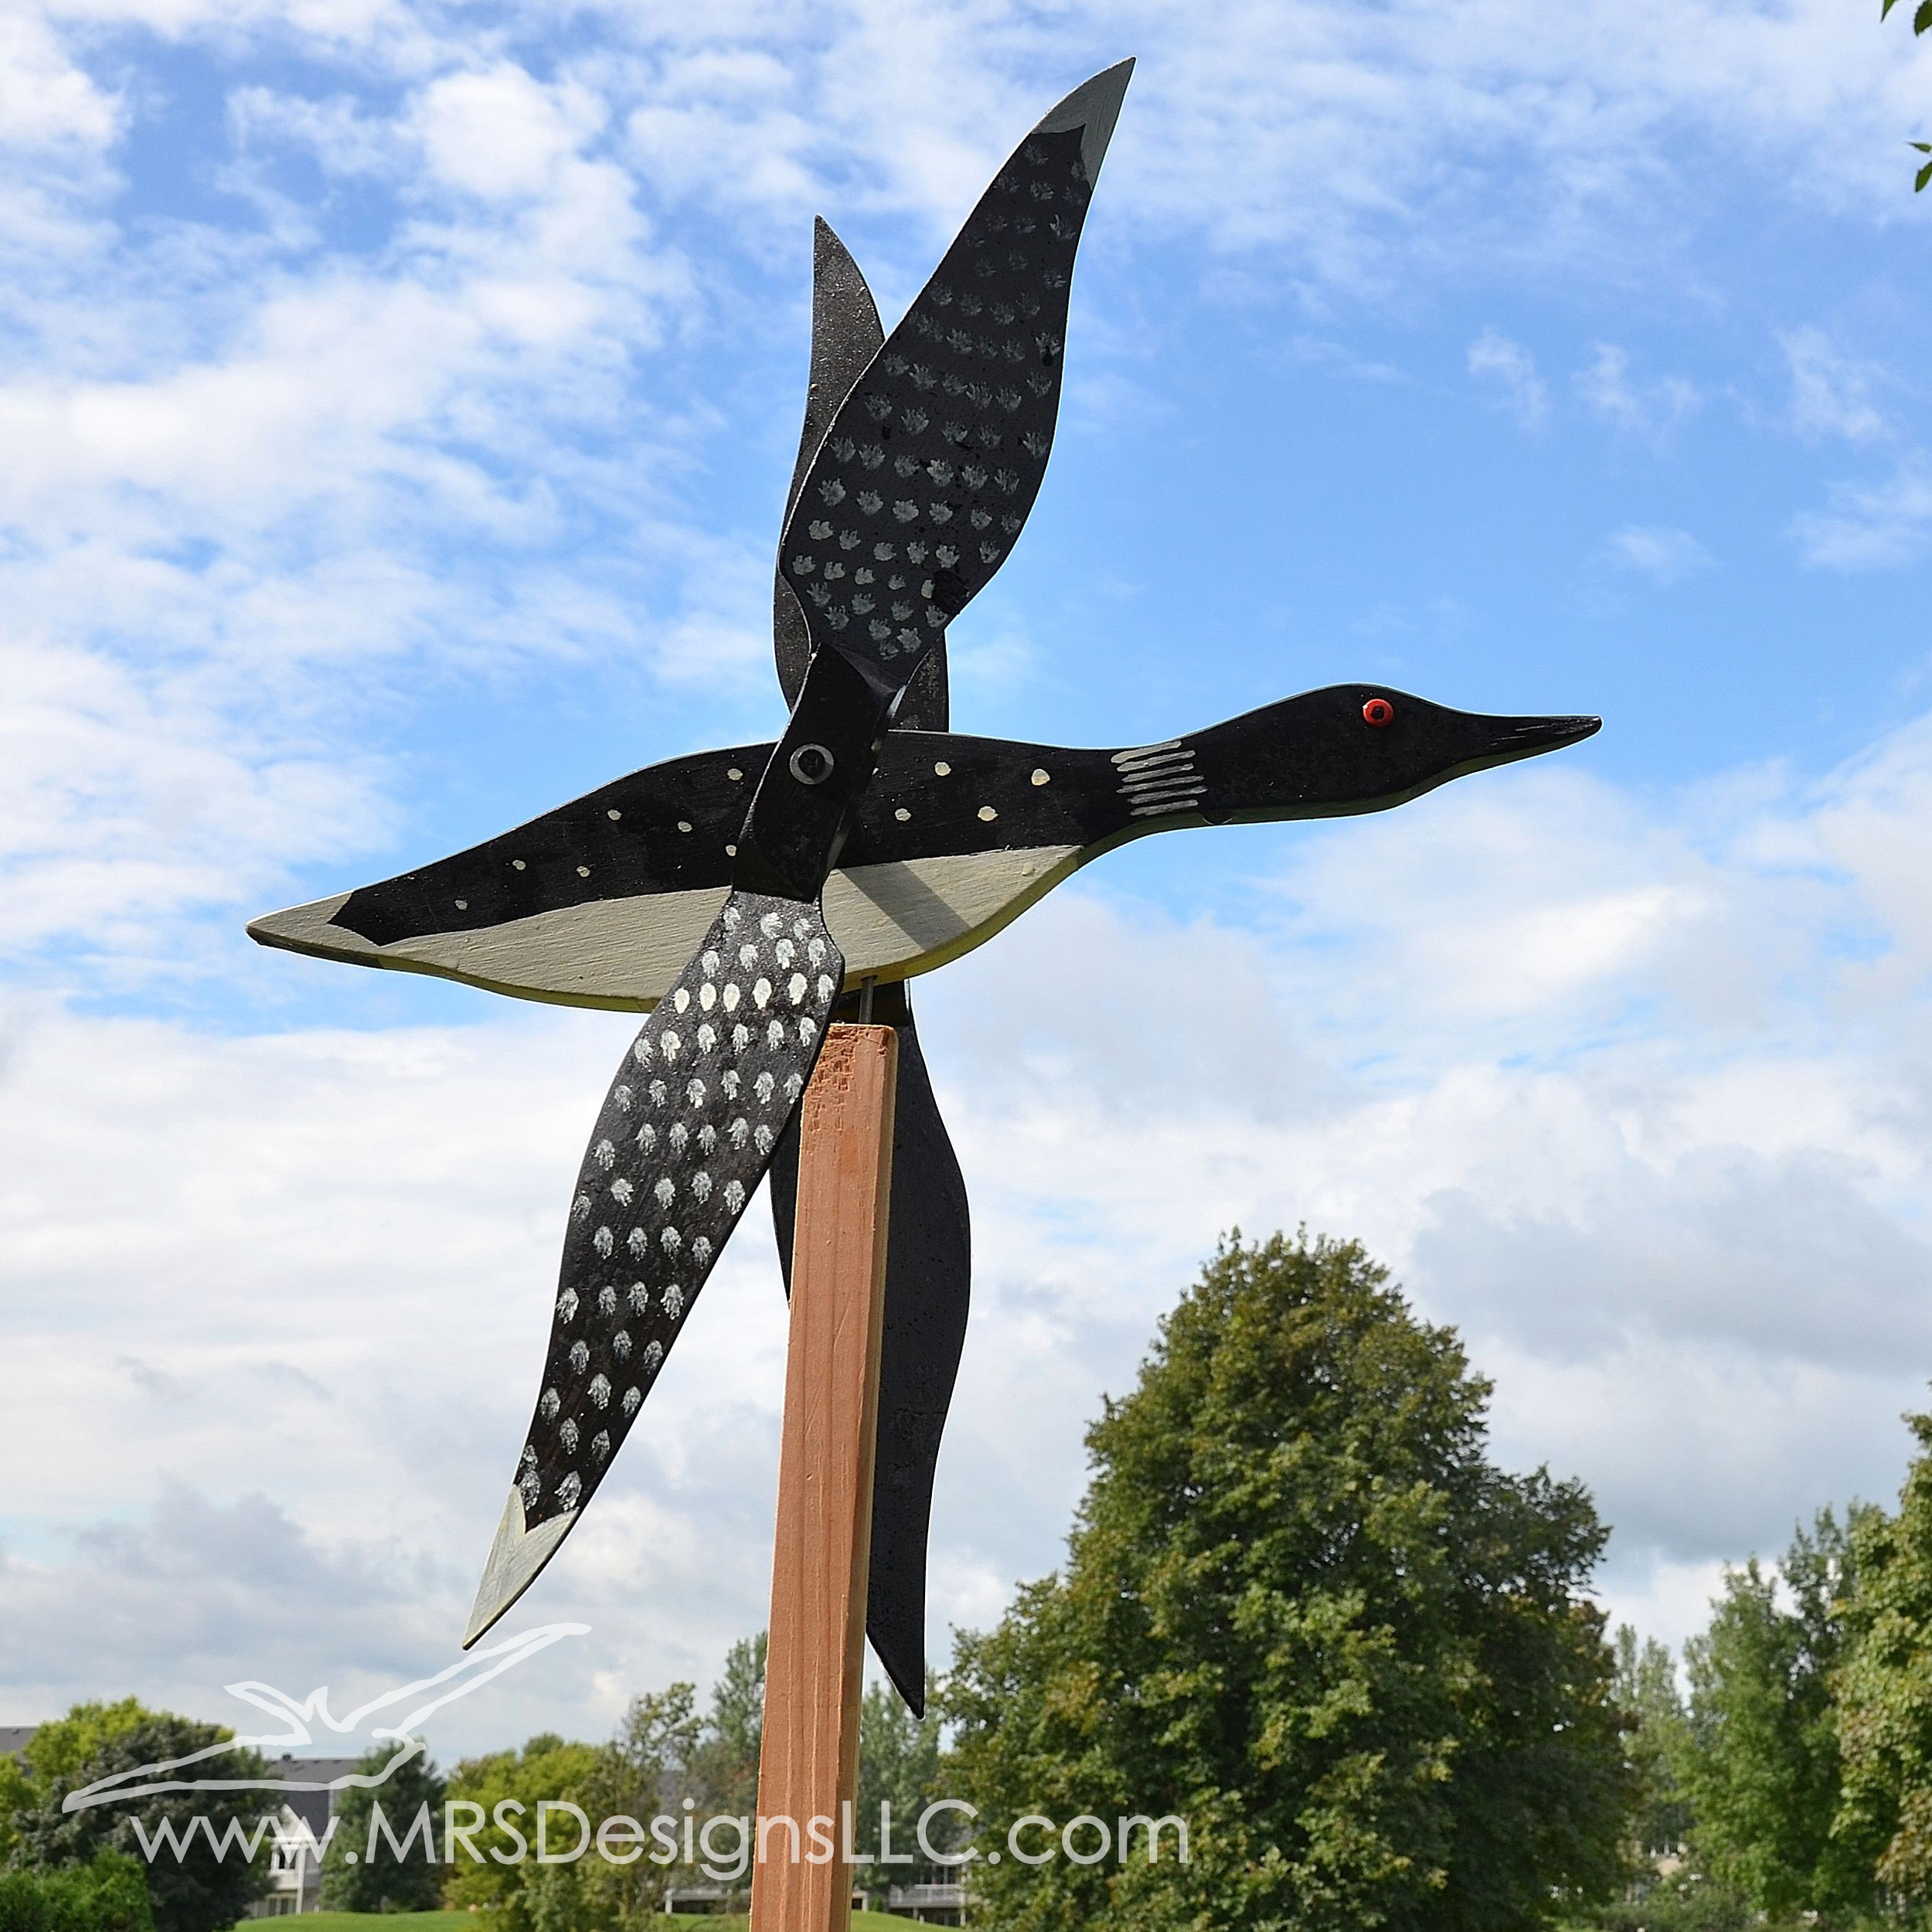 MRS Designs Blog - Loons blowing in the wind.jpg